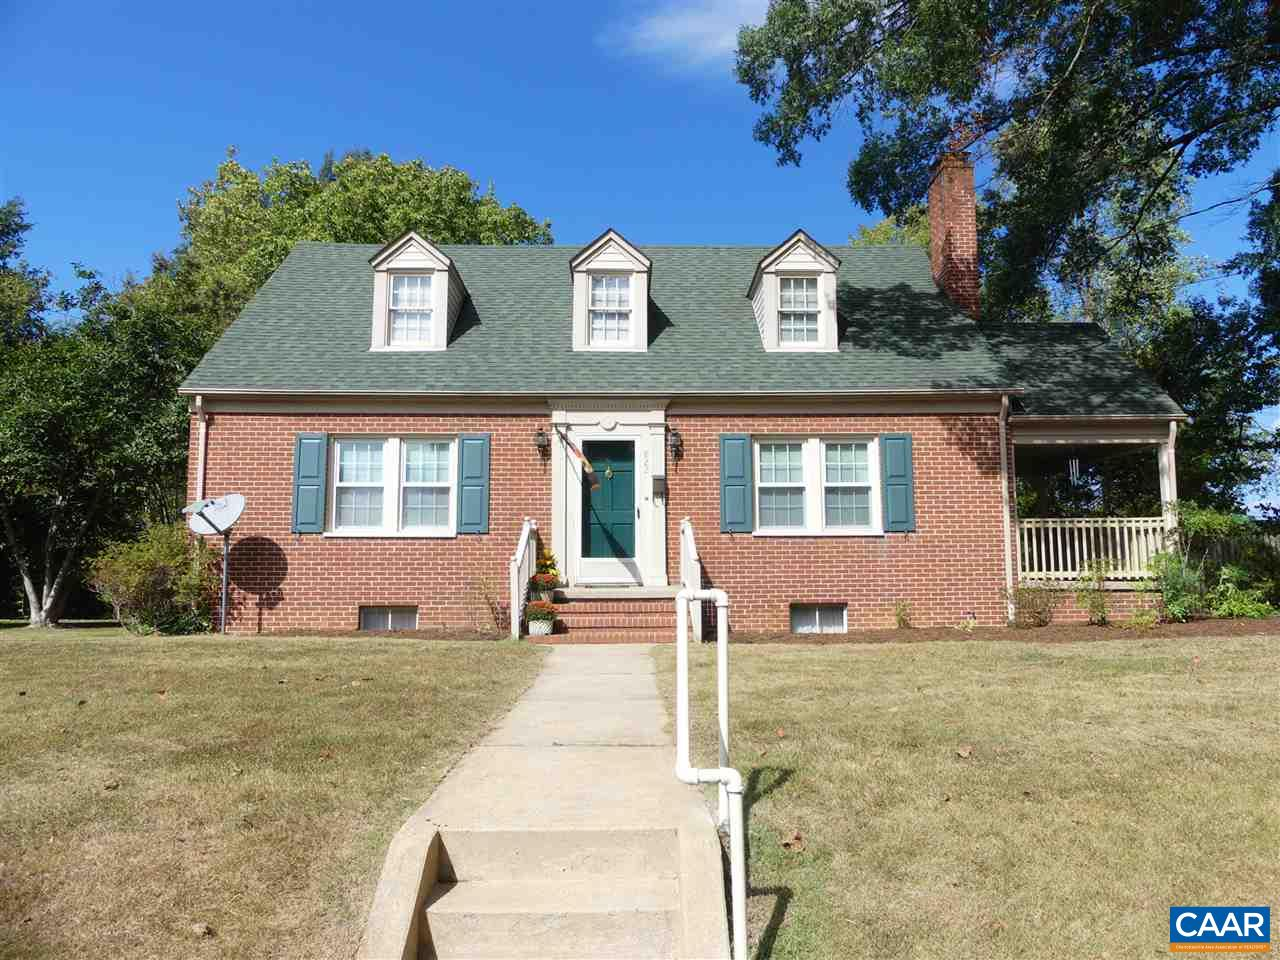 822 BUFFALO ST, FARMVILLE, VA 23901